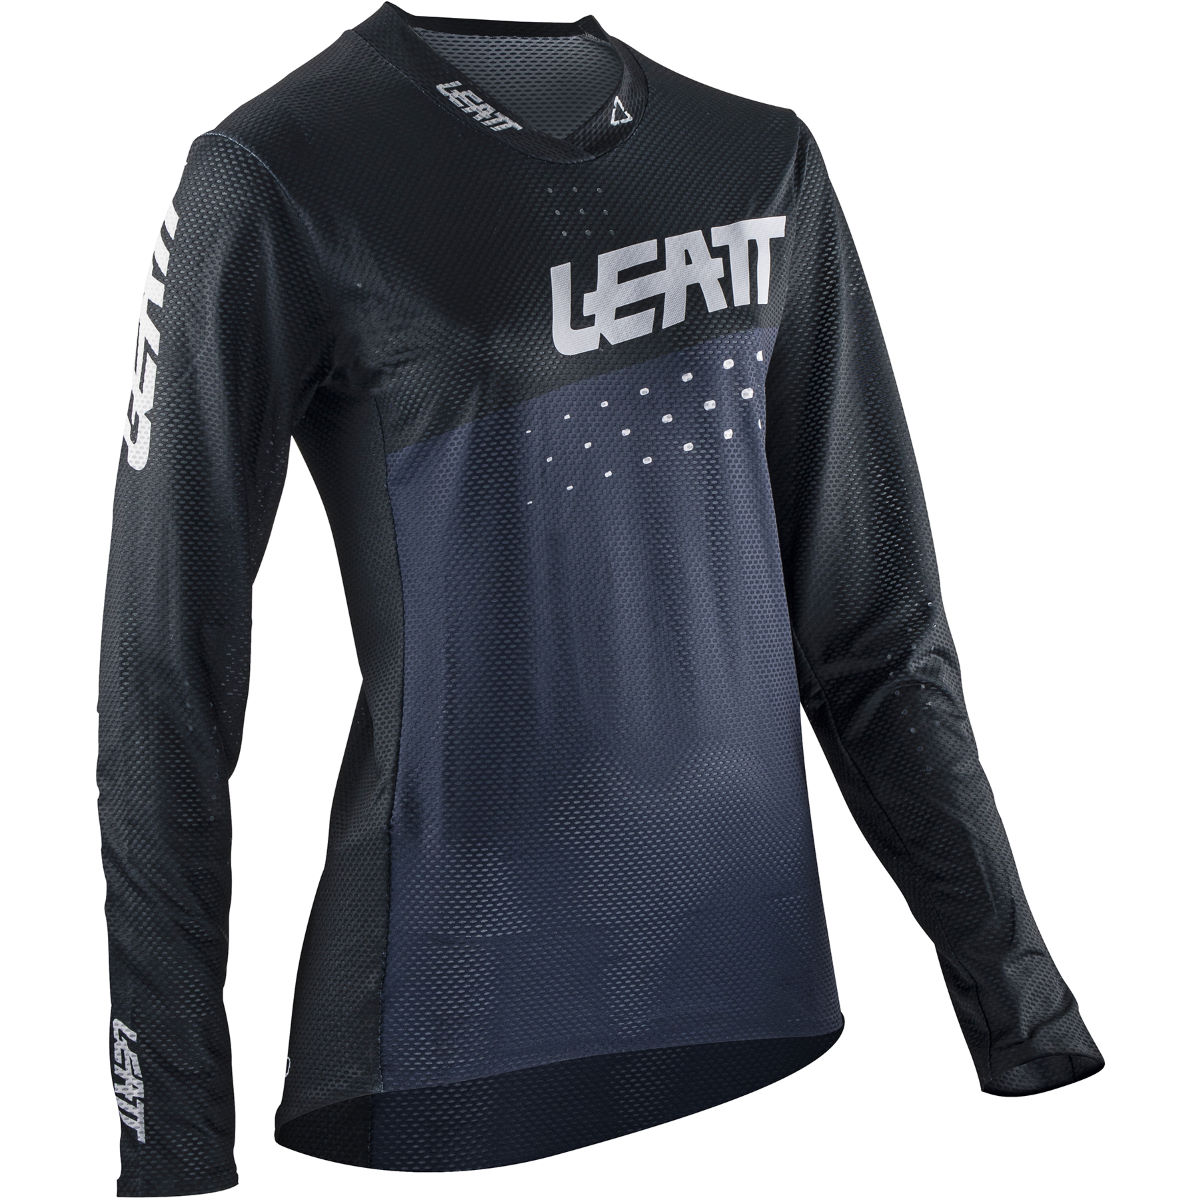 Leatt Leatt Womens MTB 4.0 UltraWeld Jersey   Jerseys